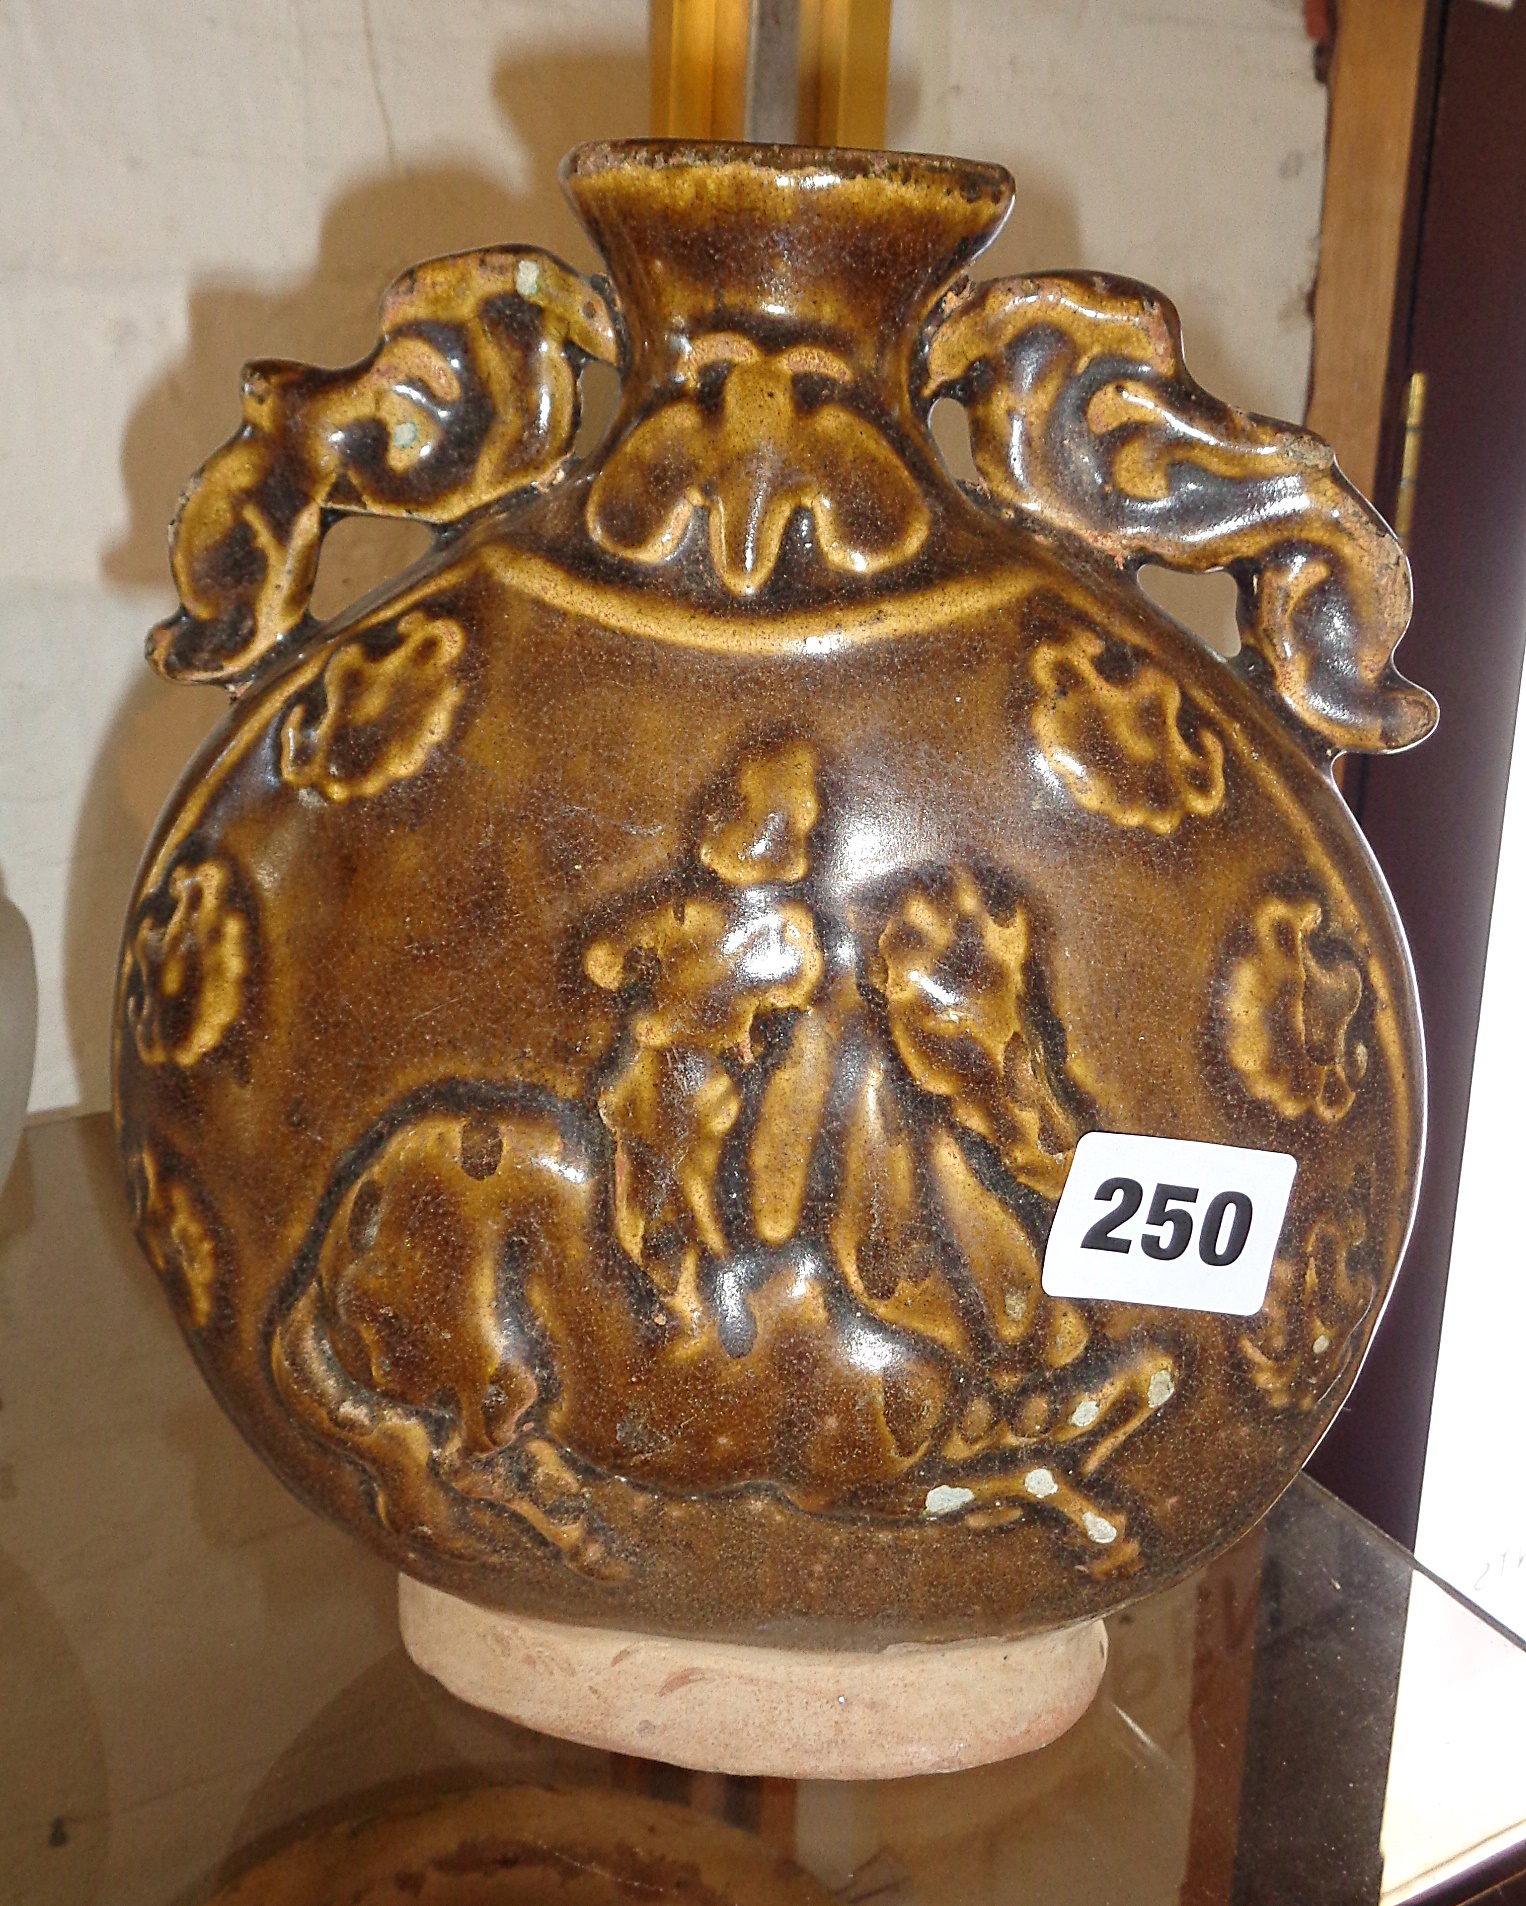 Lot 250 - Chinese moon flask with raised horse and rider decoration, in brown treacle glaze